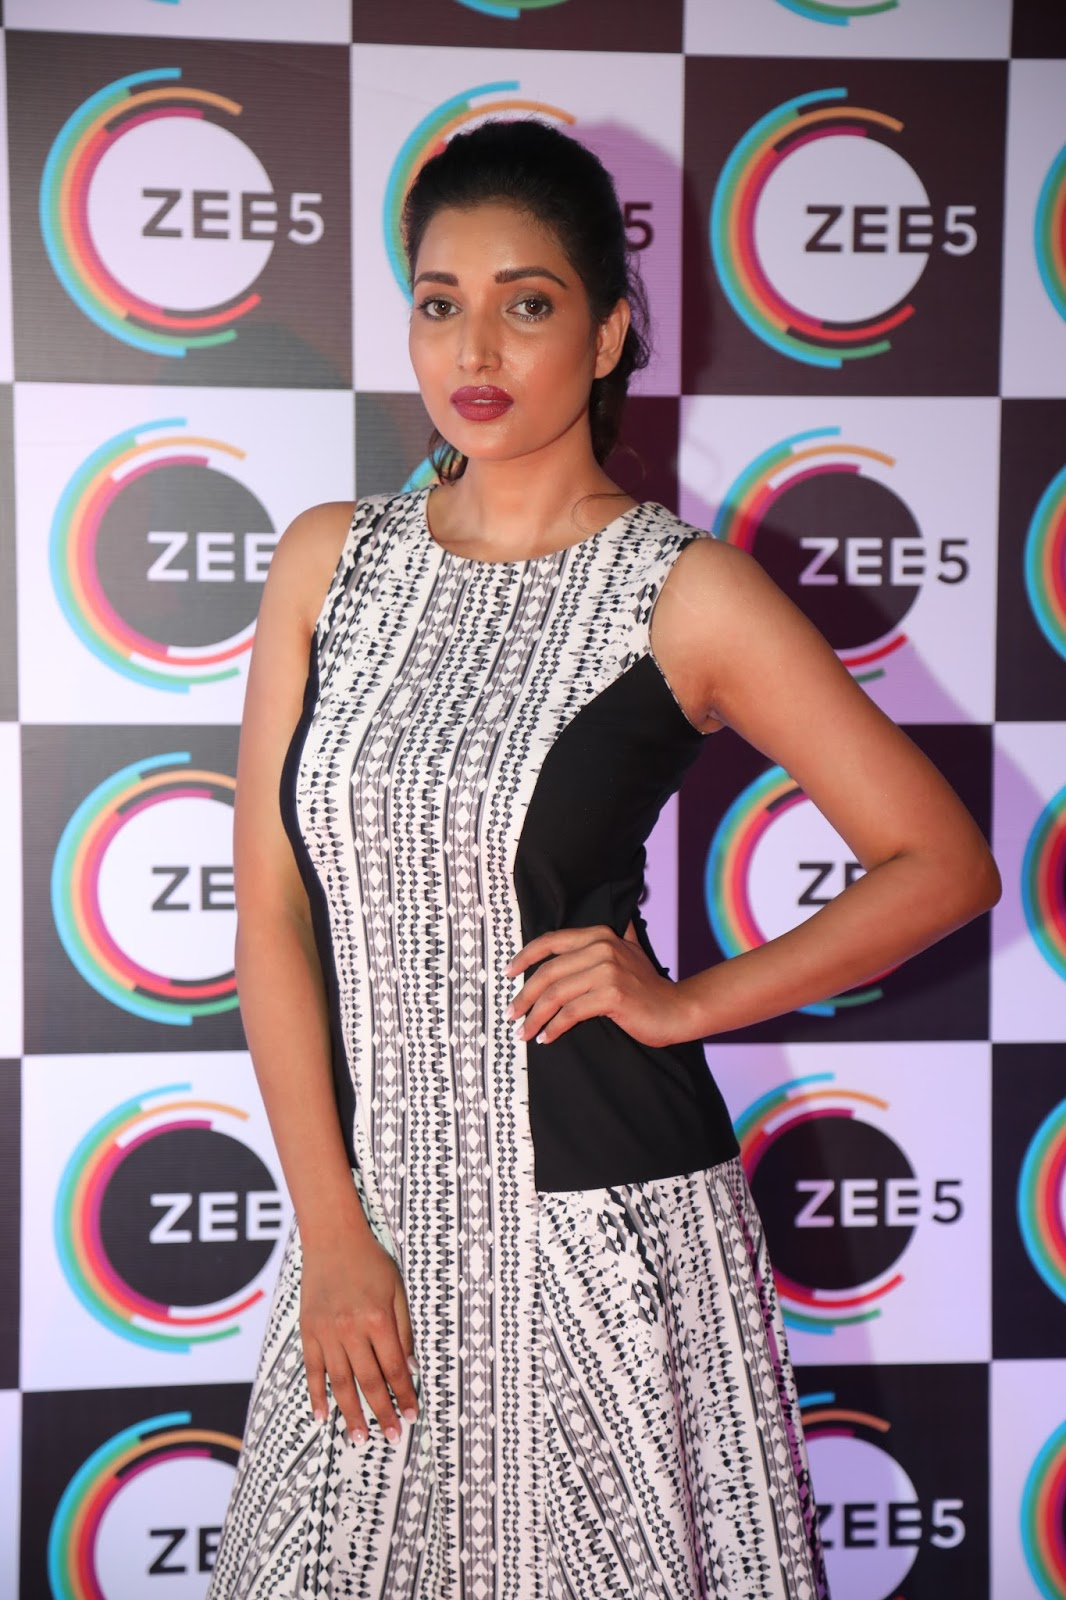 This Spring, ZEE Entertainment announces the launch of ZEE5